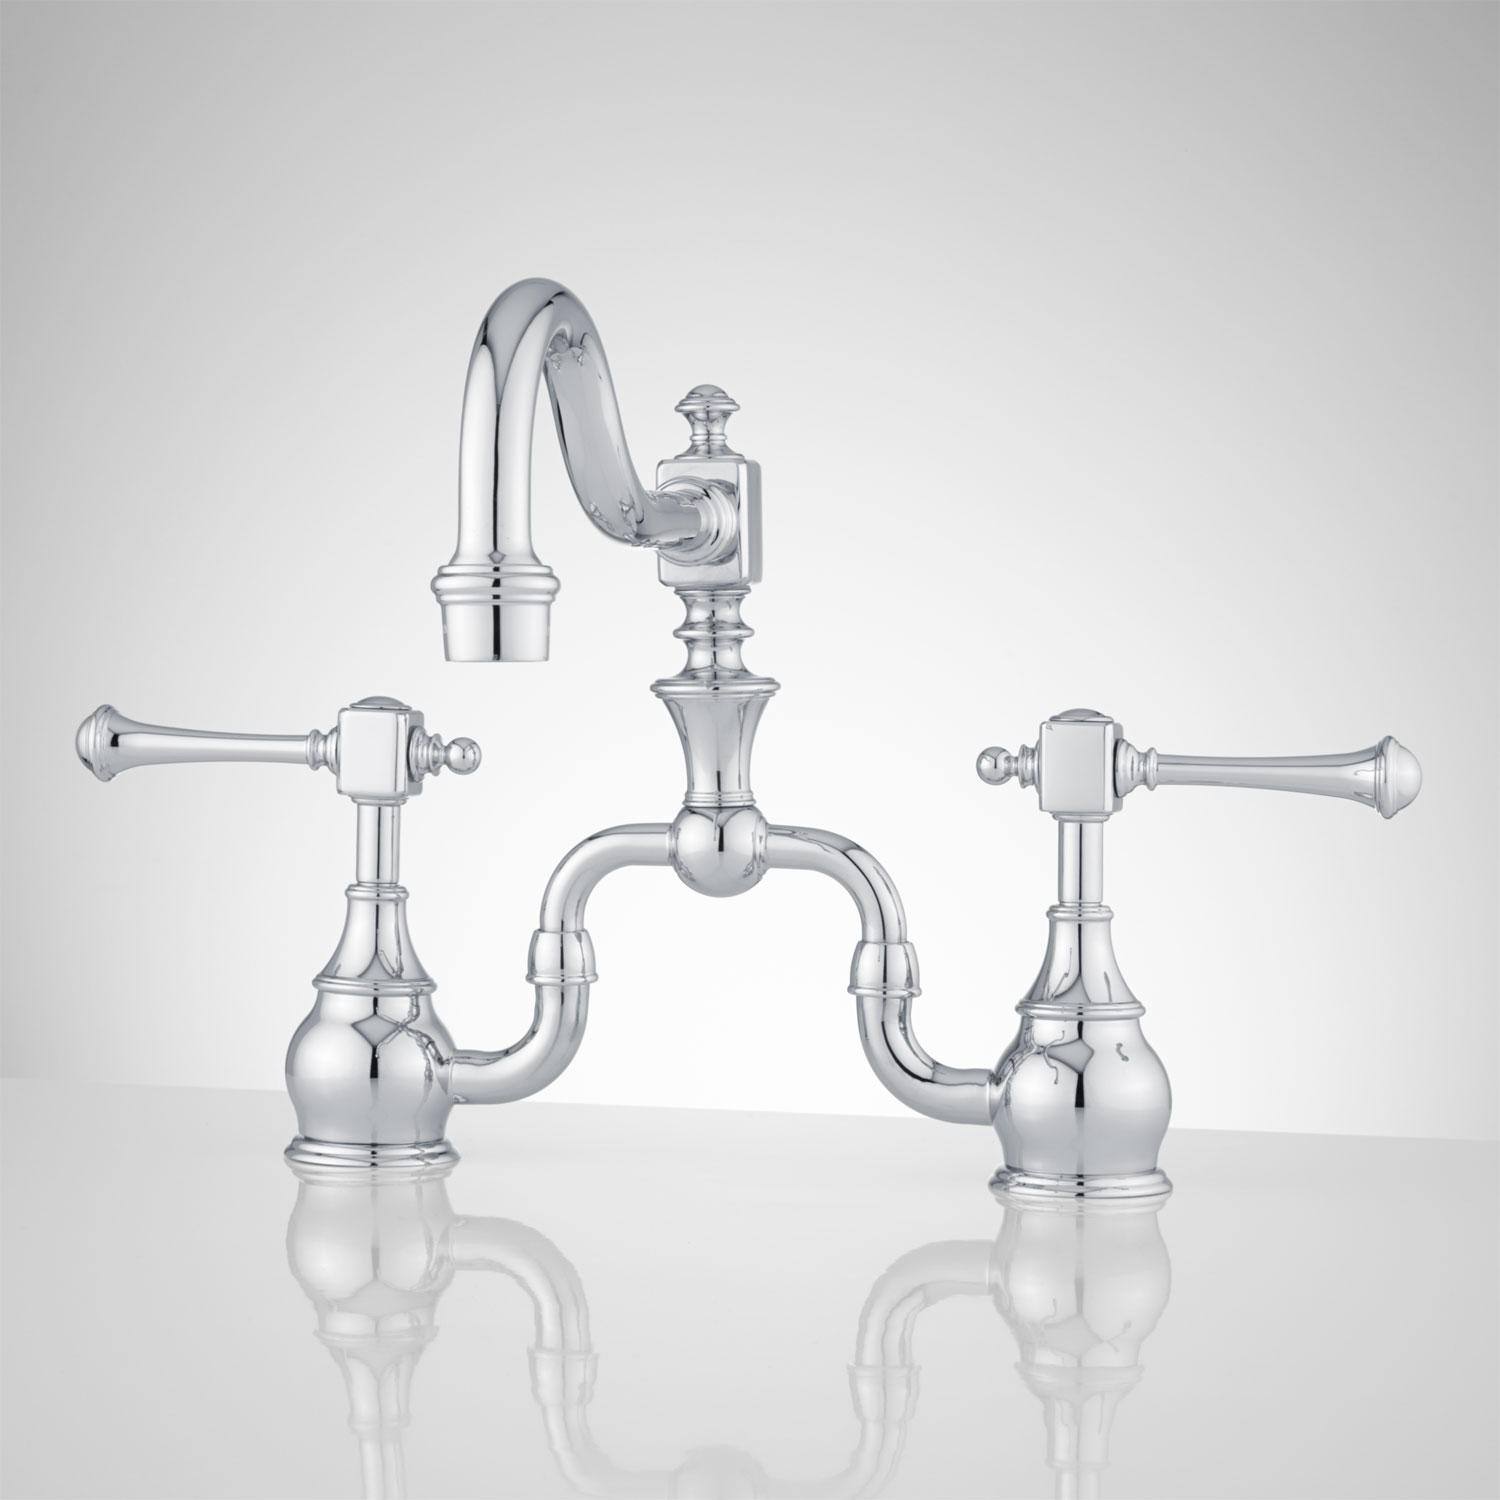 Ideas, old style kitchen faucets old style kitchen faucets vintage bridge kitchen faucet lever handles kitchen 1500 x 1500 1  .